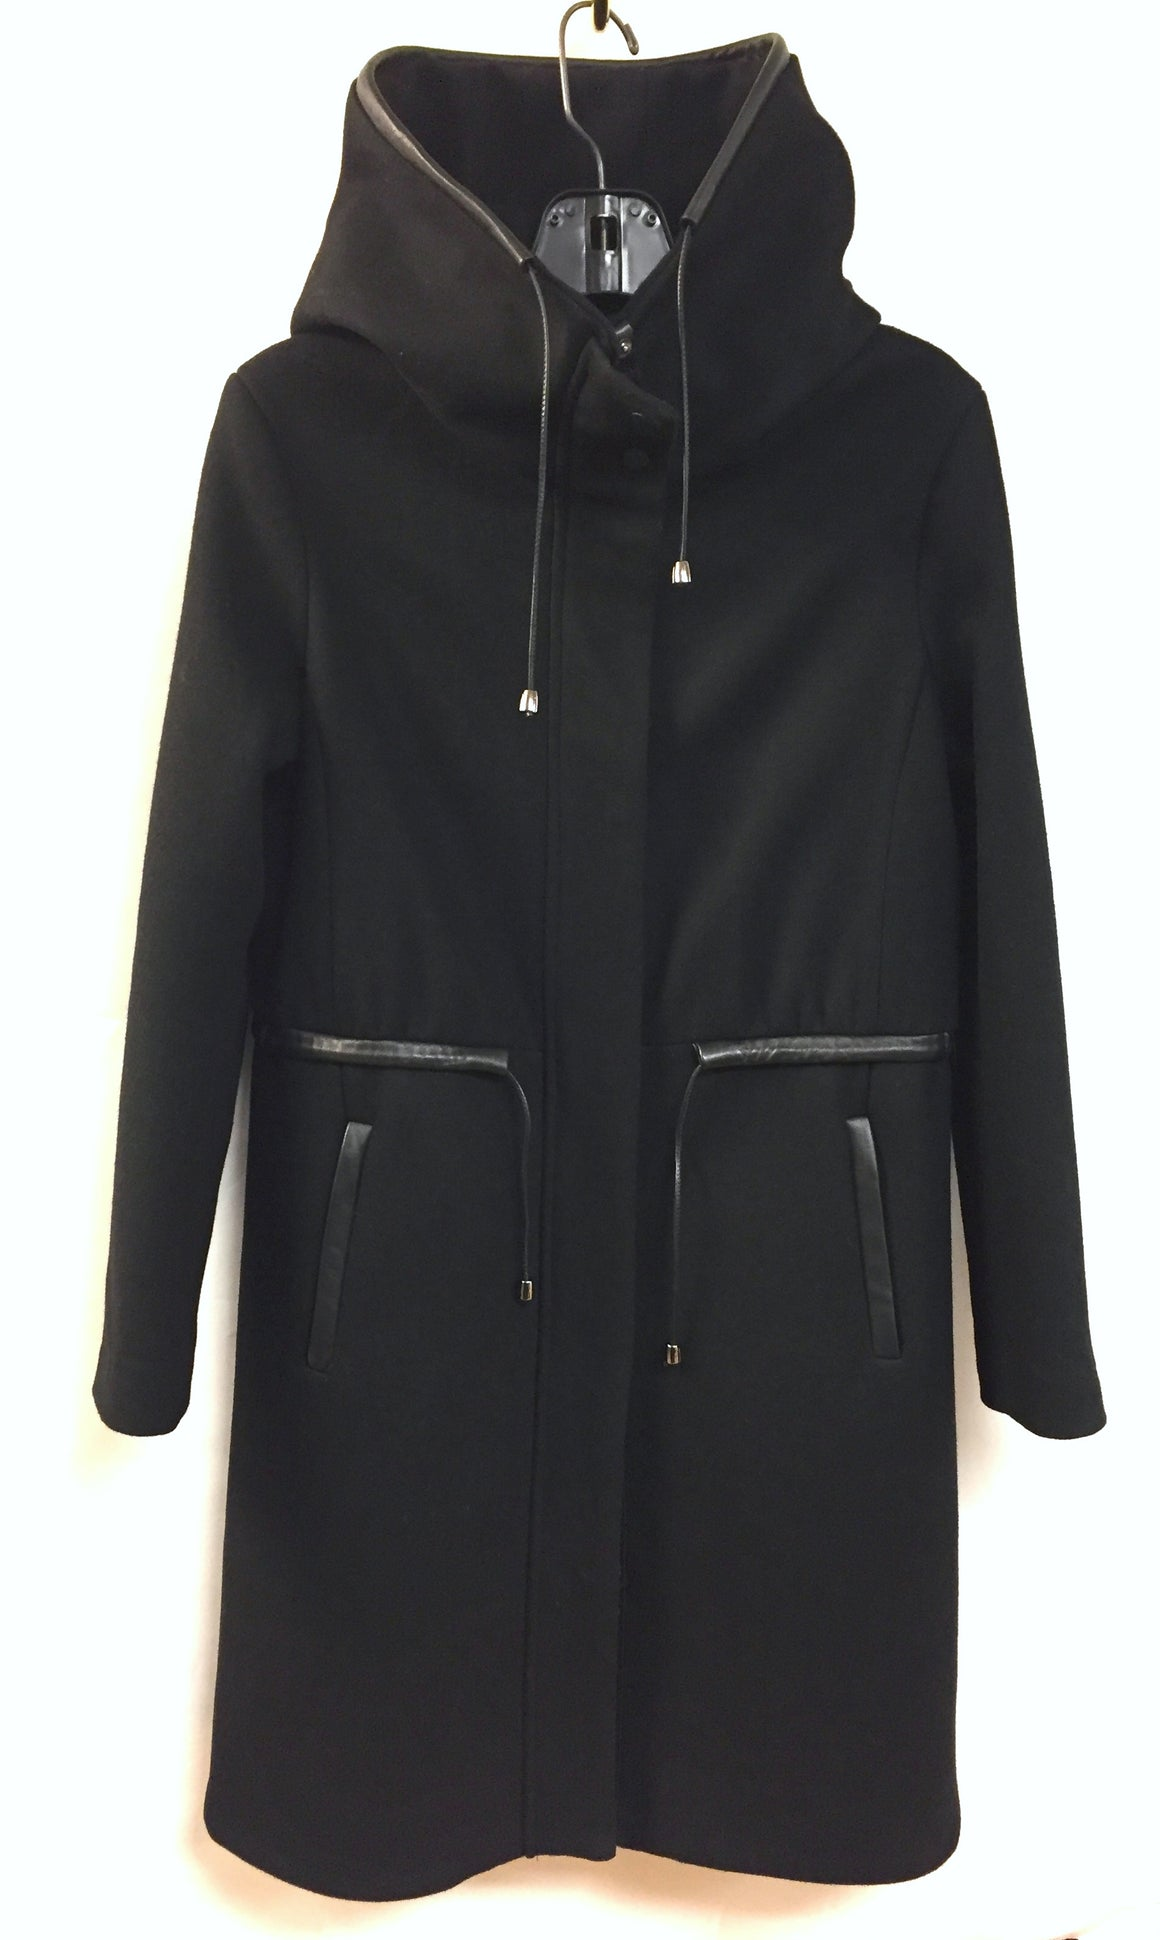 MACKAGE  Black Wool-Blend Zip/Snap-Front Drawstring Waist Winter Coat  Size: Medium